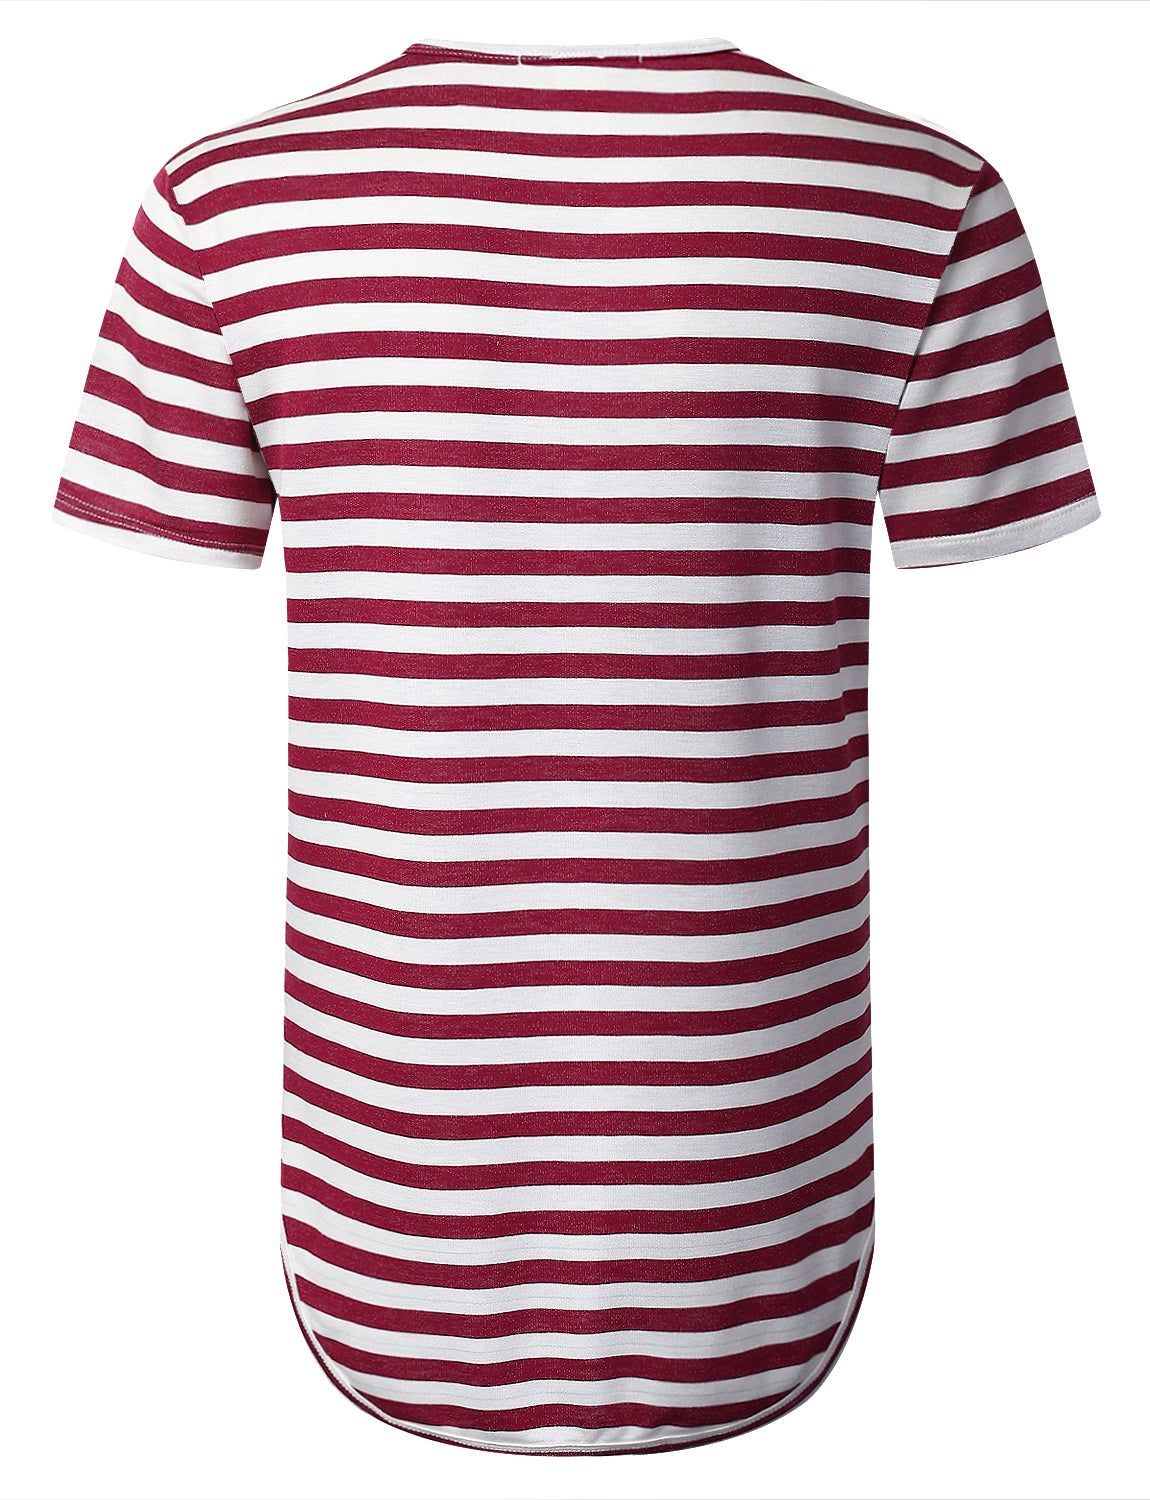 WINE Crewneck Striped Longline T-shirt - URBANCREWS